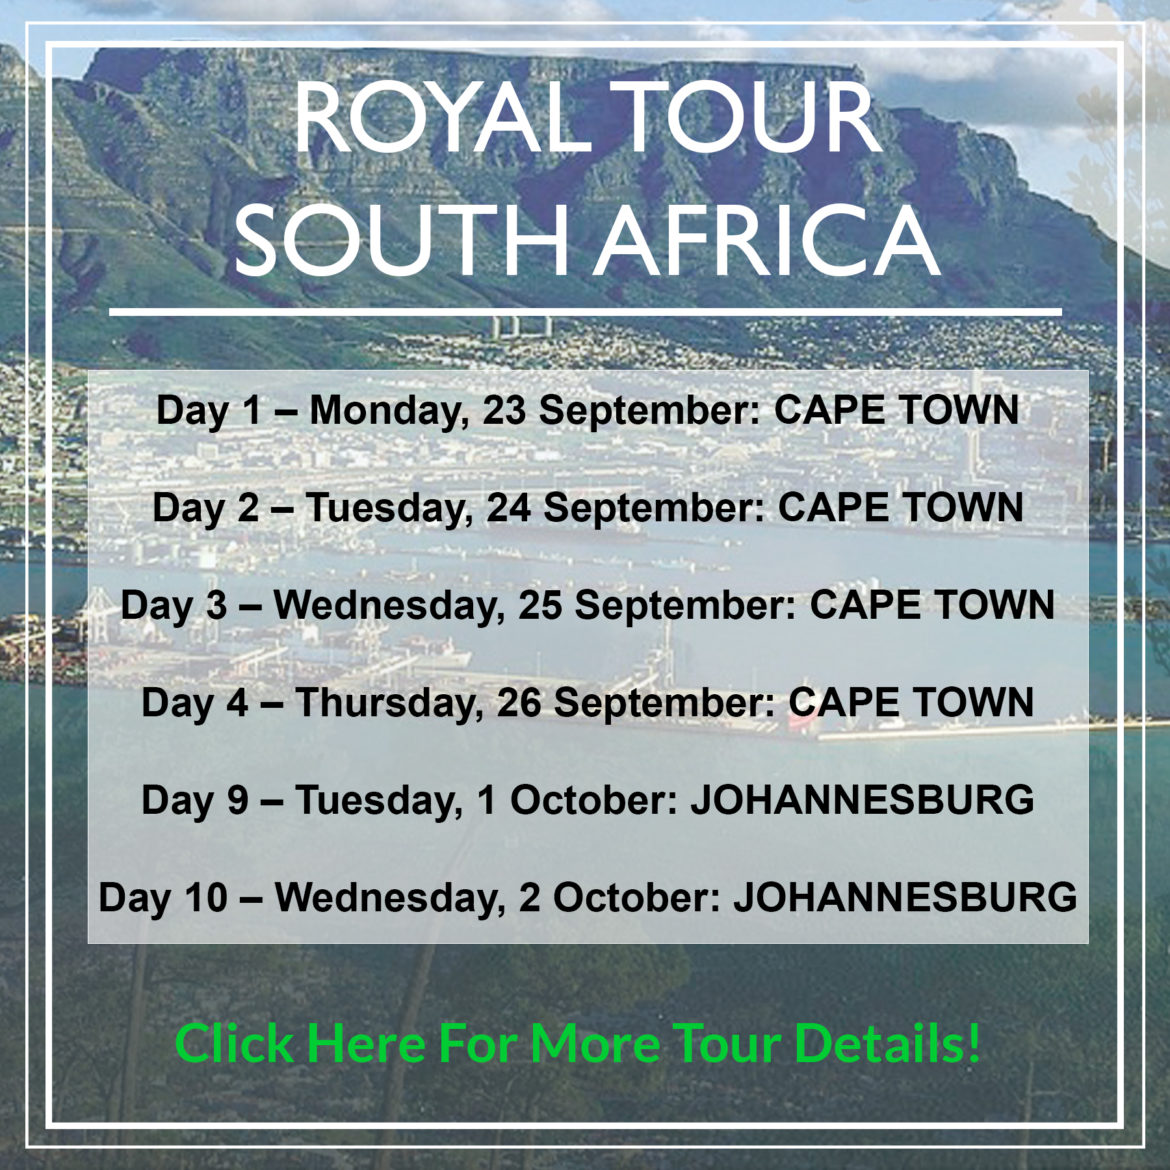 Royal Tour South Africa